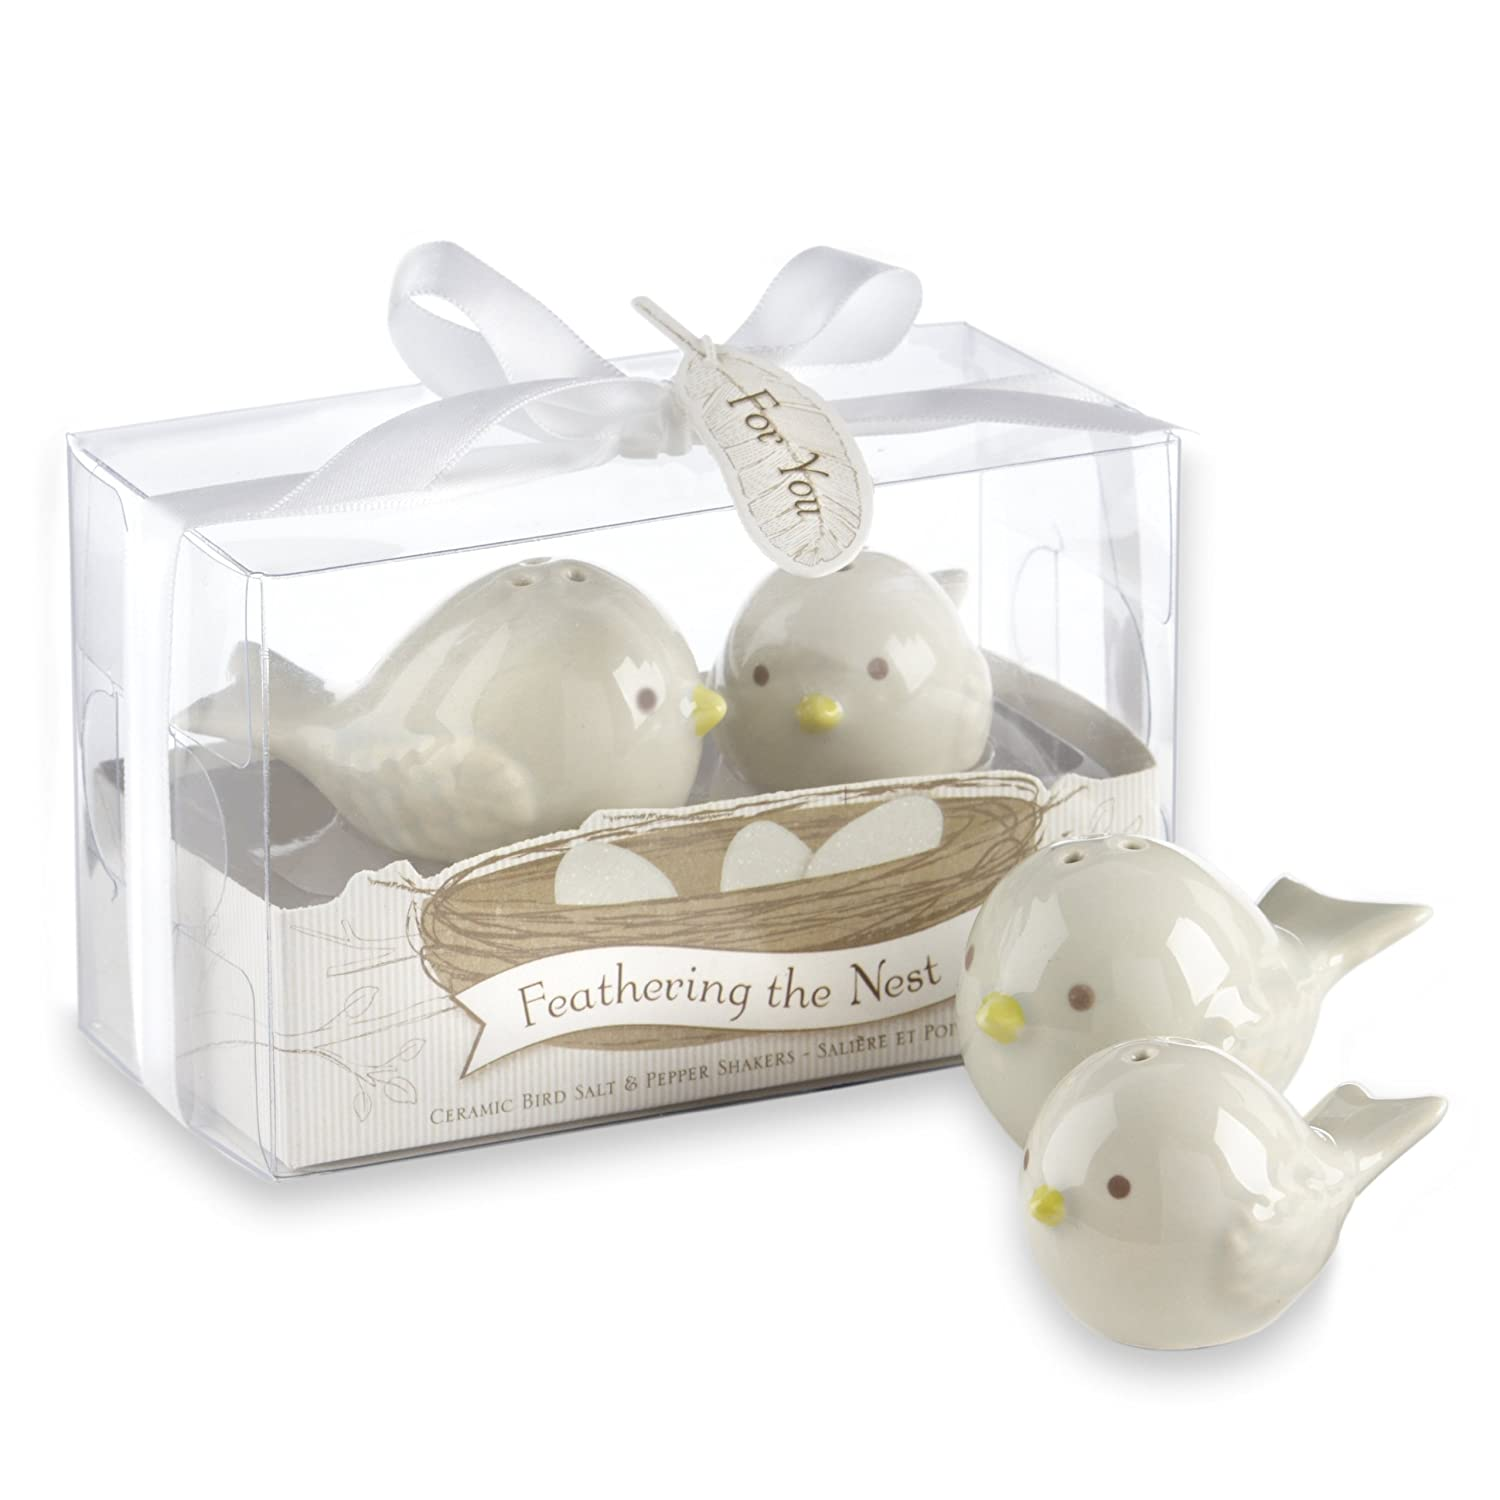 Amazon Kate Aspen Feathering The Nest Ceramic Birds Salt And